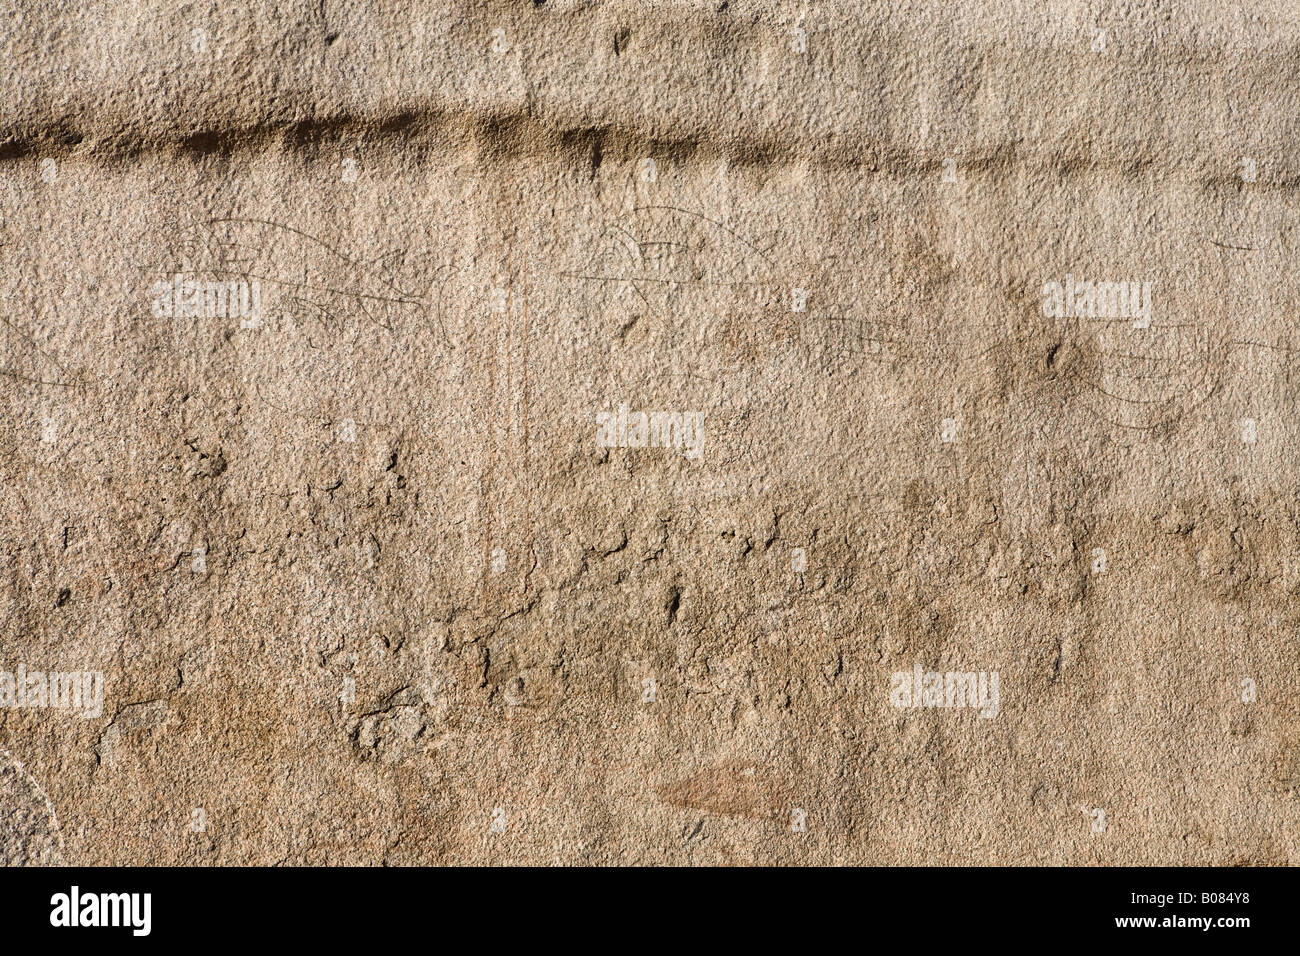 Quarry markings and graffiti of the workmen at the site of the Unfinished Obelisk, Aswan, Egypt. - Stock Image